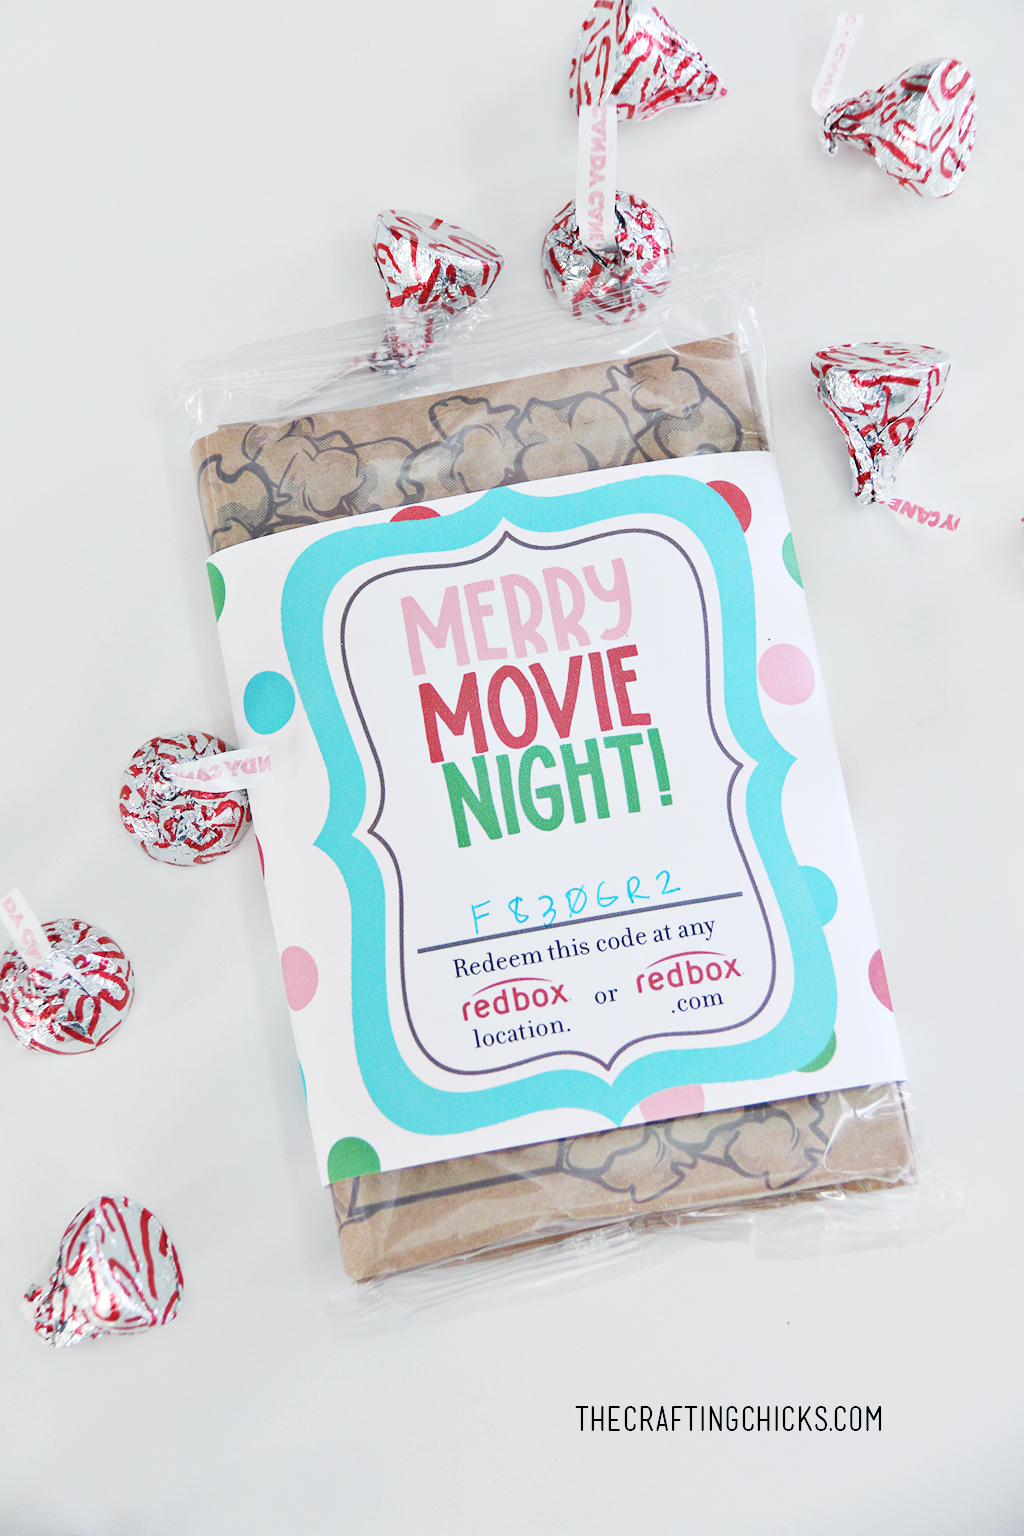 Merry Movie Night Redbox gift idea